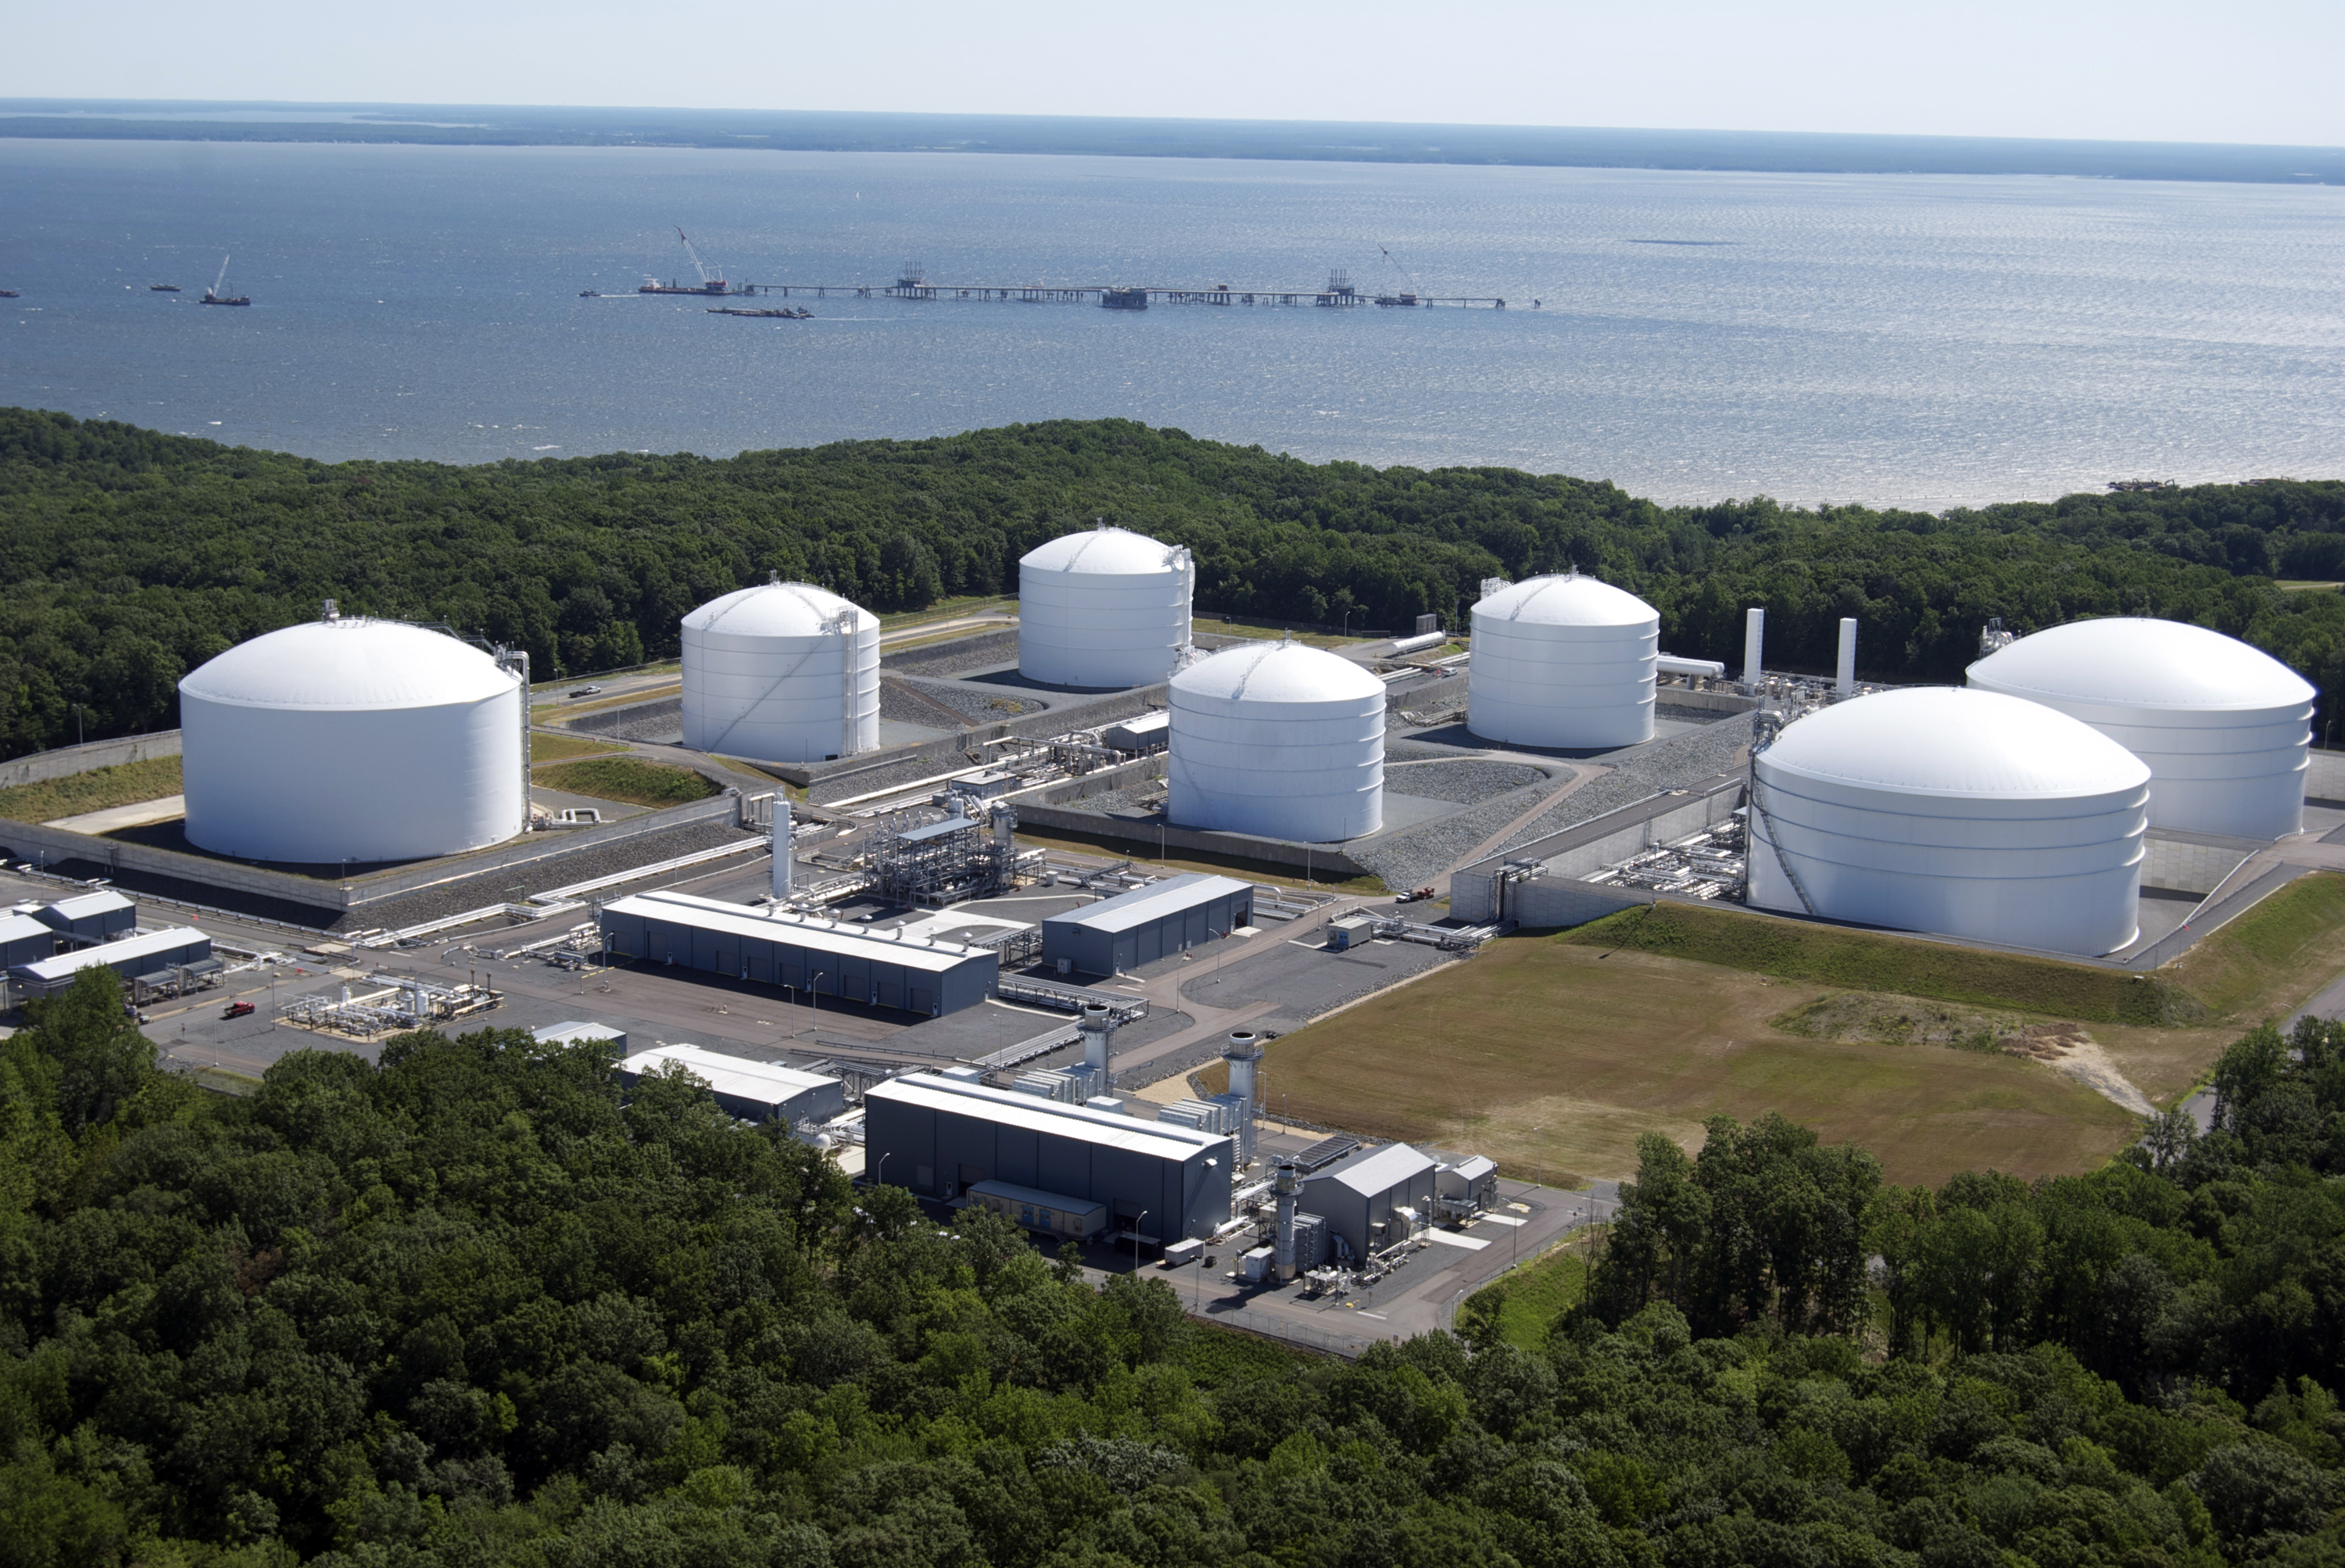 Dominion s Cove Point plant preparing to export LNG